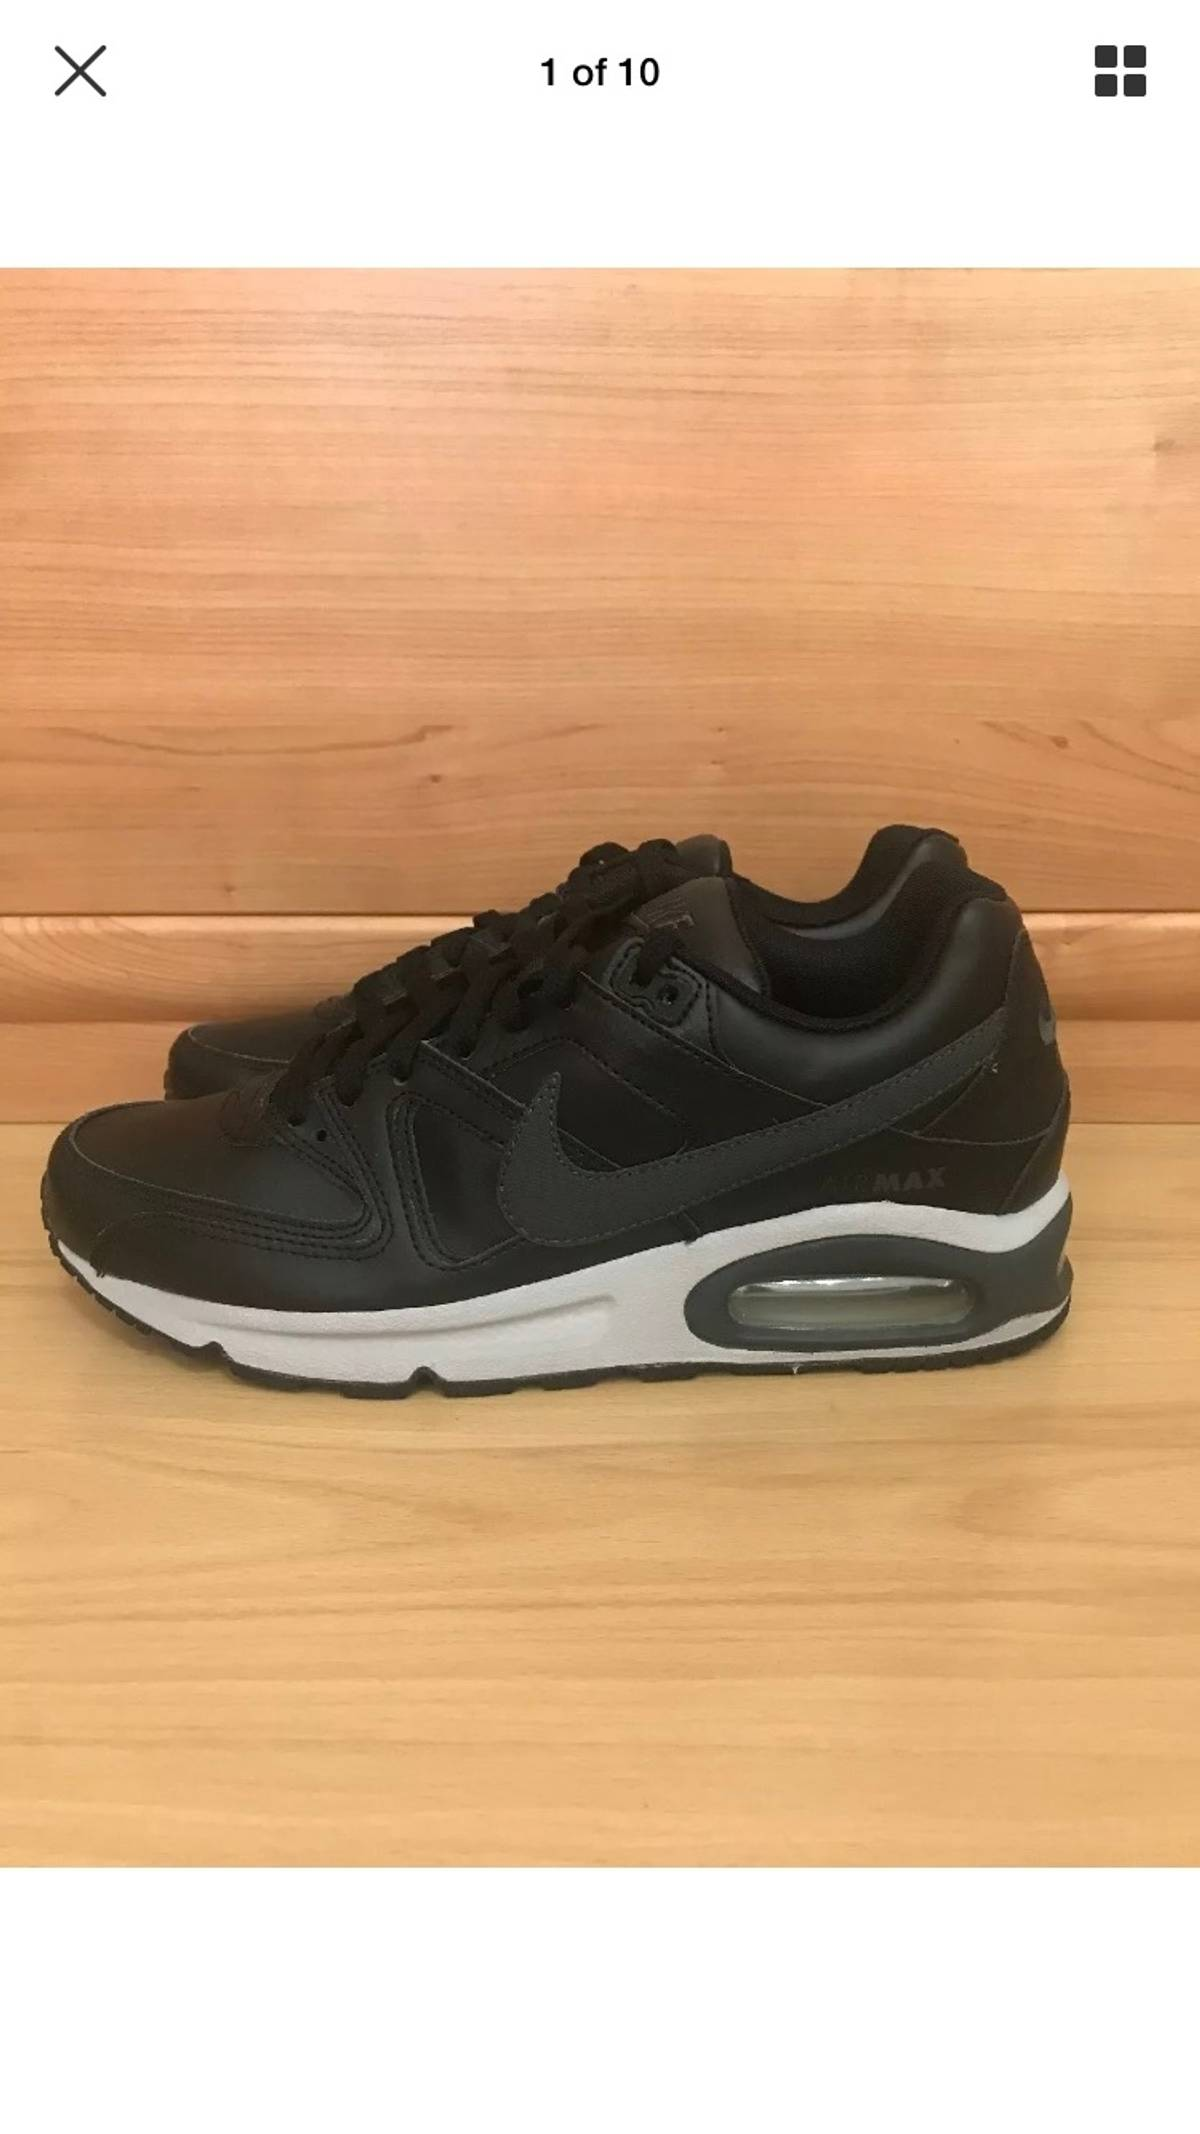 Nike Nike Air Max Command Leather Black Trainers Uk Size 8.5 Size 9.5 $80